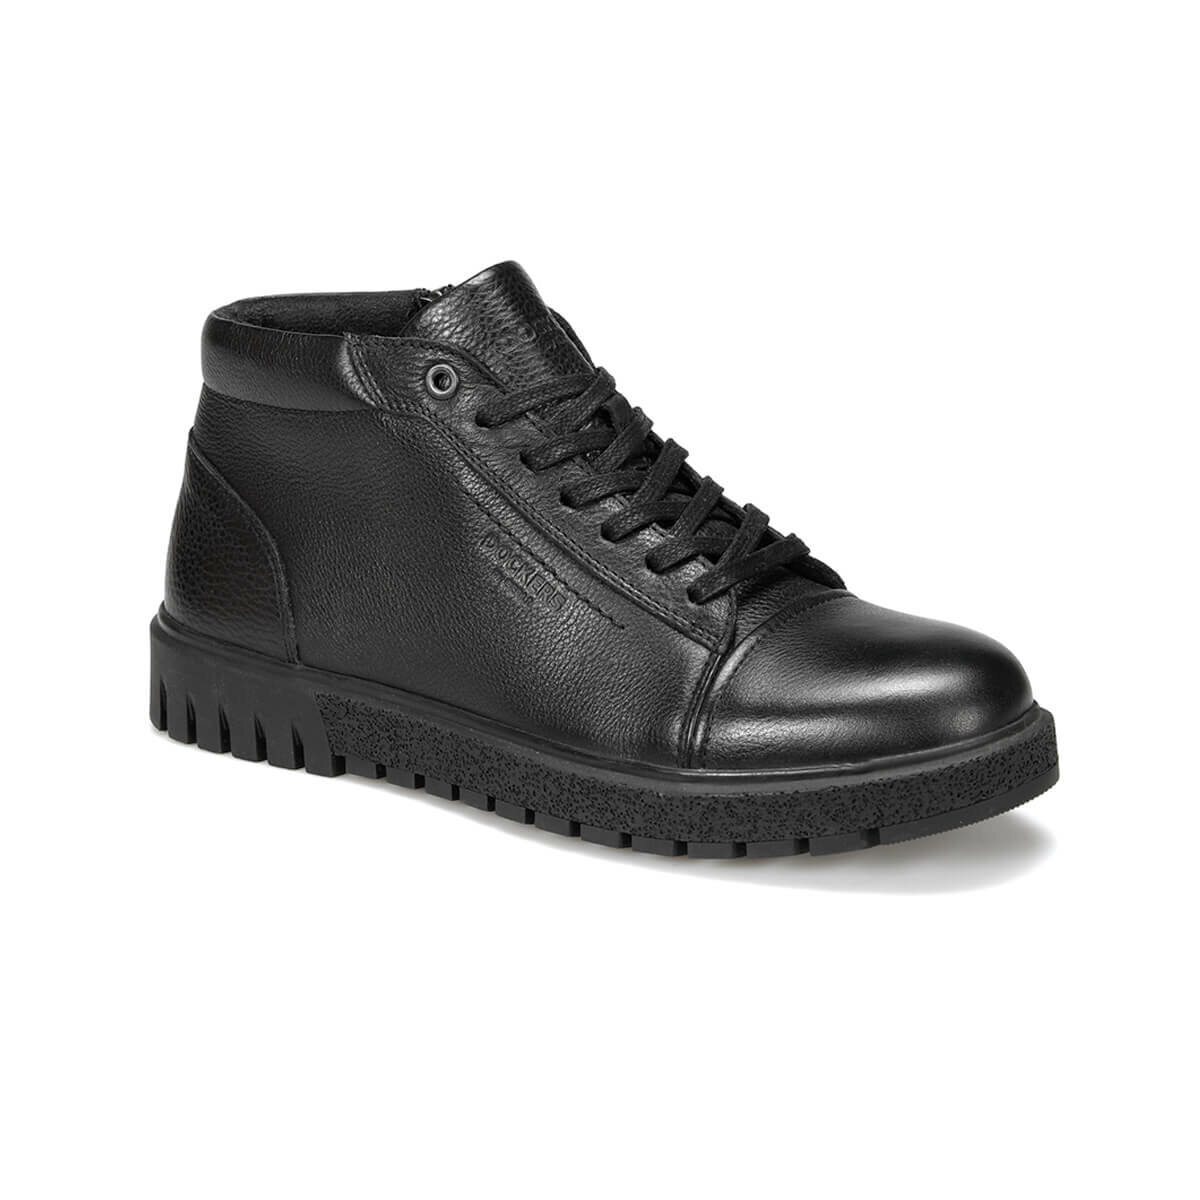 FLO 227111 9PR Black Men Boots By Dockers The Gerle